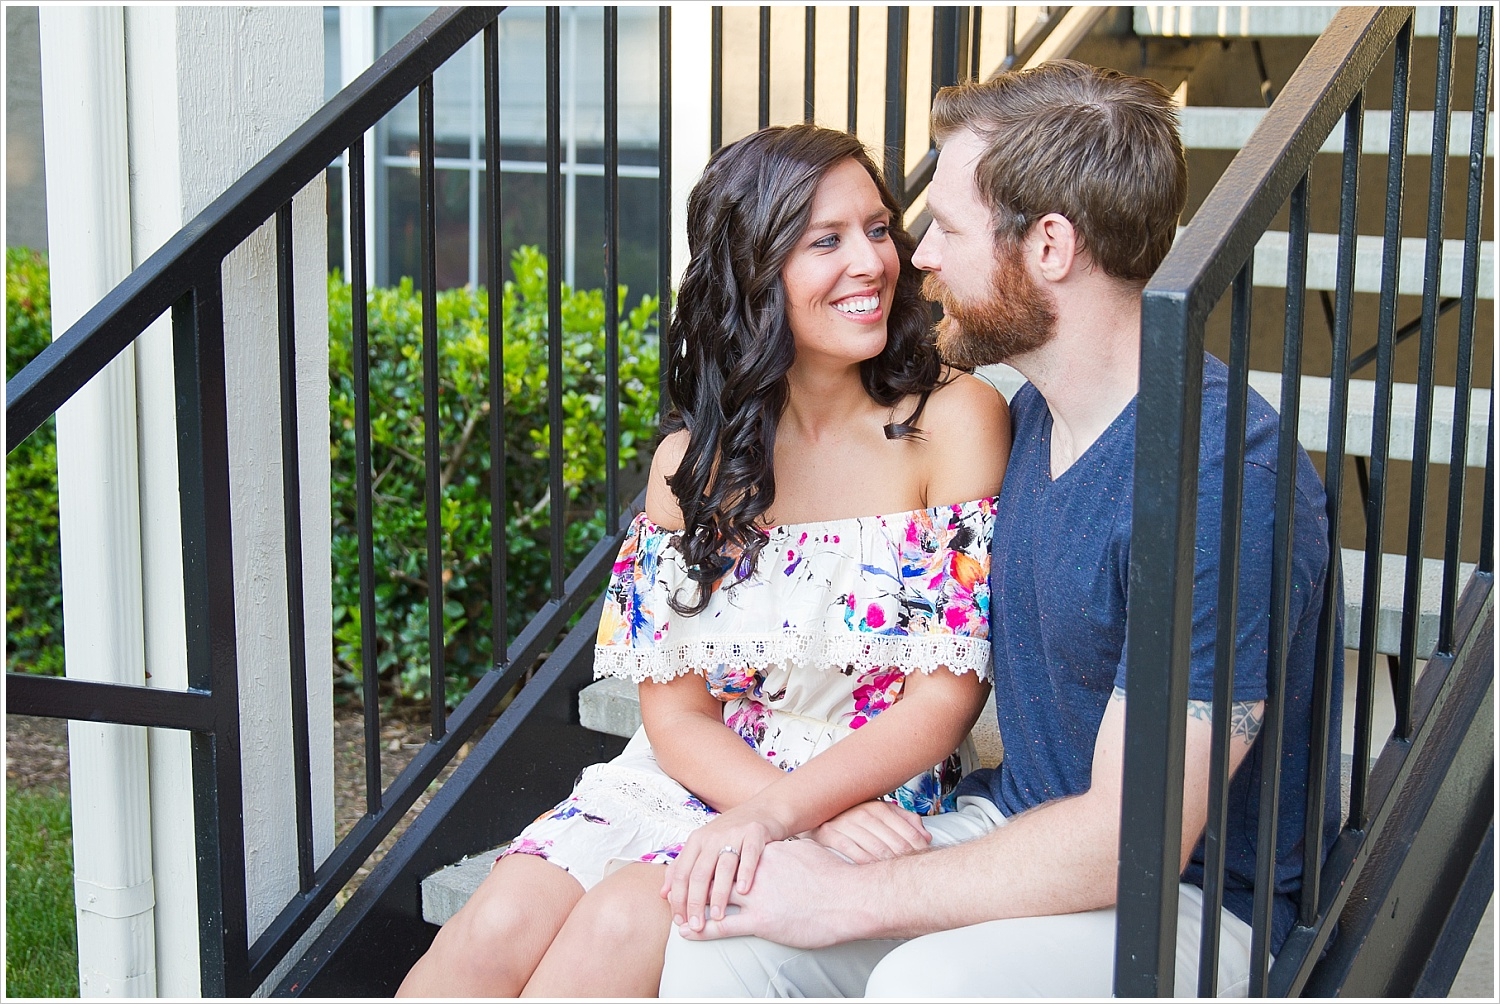 Randell & Fawn sit together on the stairs of their old apartment complex at an engagement photography session in Frisco, Texas by Texas wedding photographers Jason & Melaina Photography, www.jasonandmelaina.com